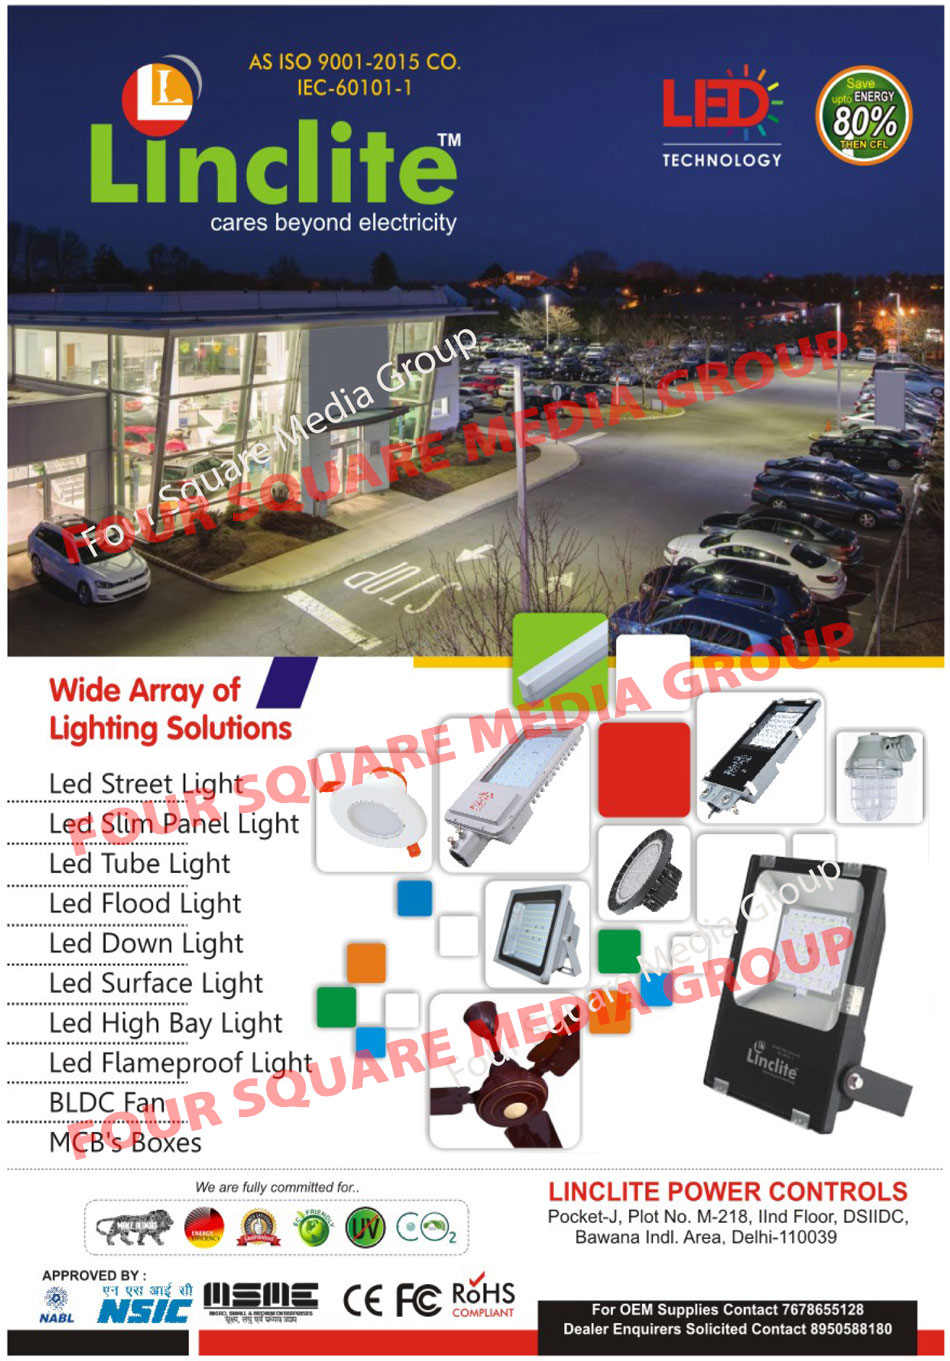 Led Lights, Led Street Lights, Led Slim Panel Lights, Slim Led Panel Lights, Led Tube Lights, Led Flood Lights, Led Down Lights, Led Surface Lights, Led High Bay Lights, Led Flameproof Lights, BLDC Fans, MCB Boxes